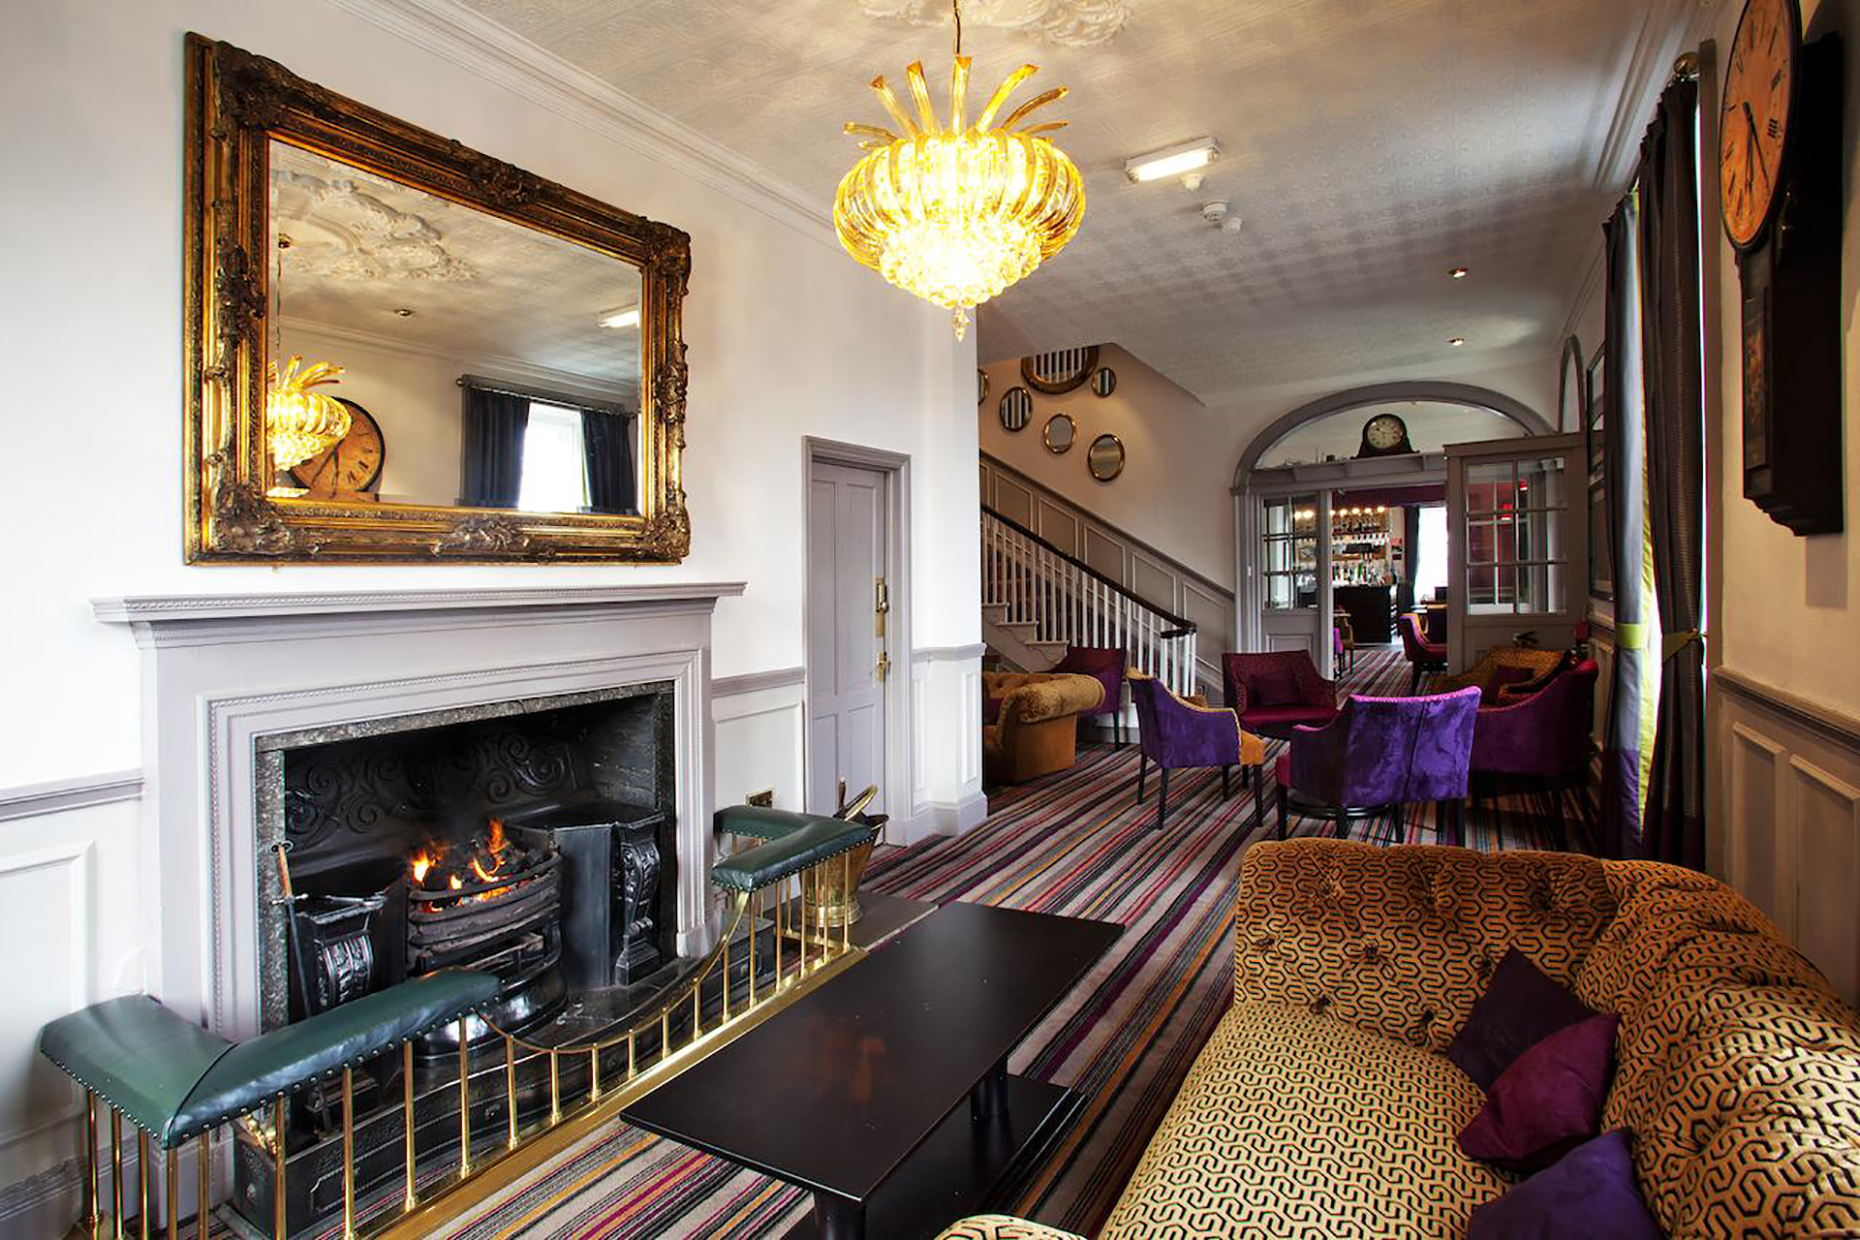 The Rutland Arms Hotel (Image: The Rutland Arms Hotel/booking.com)